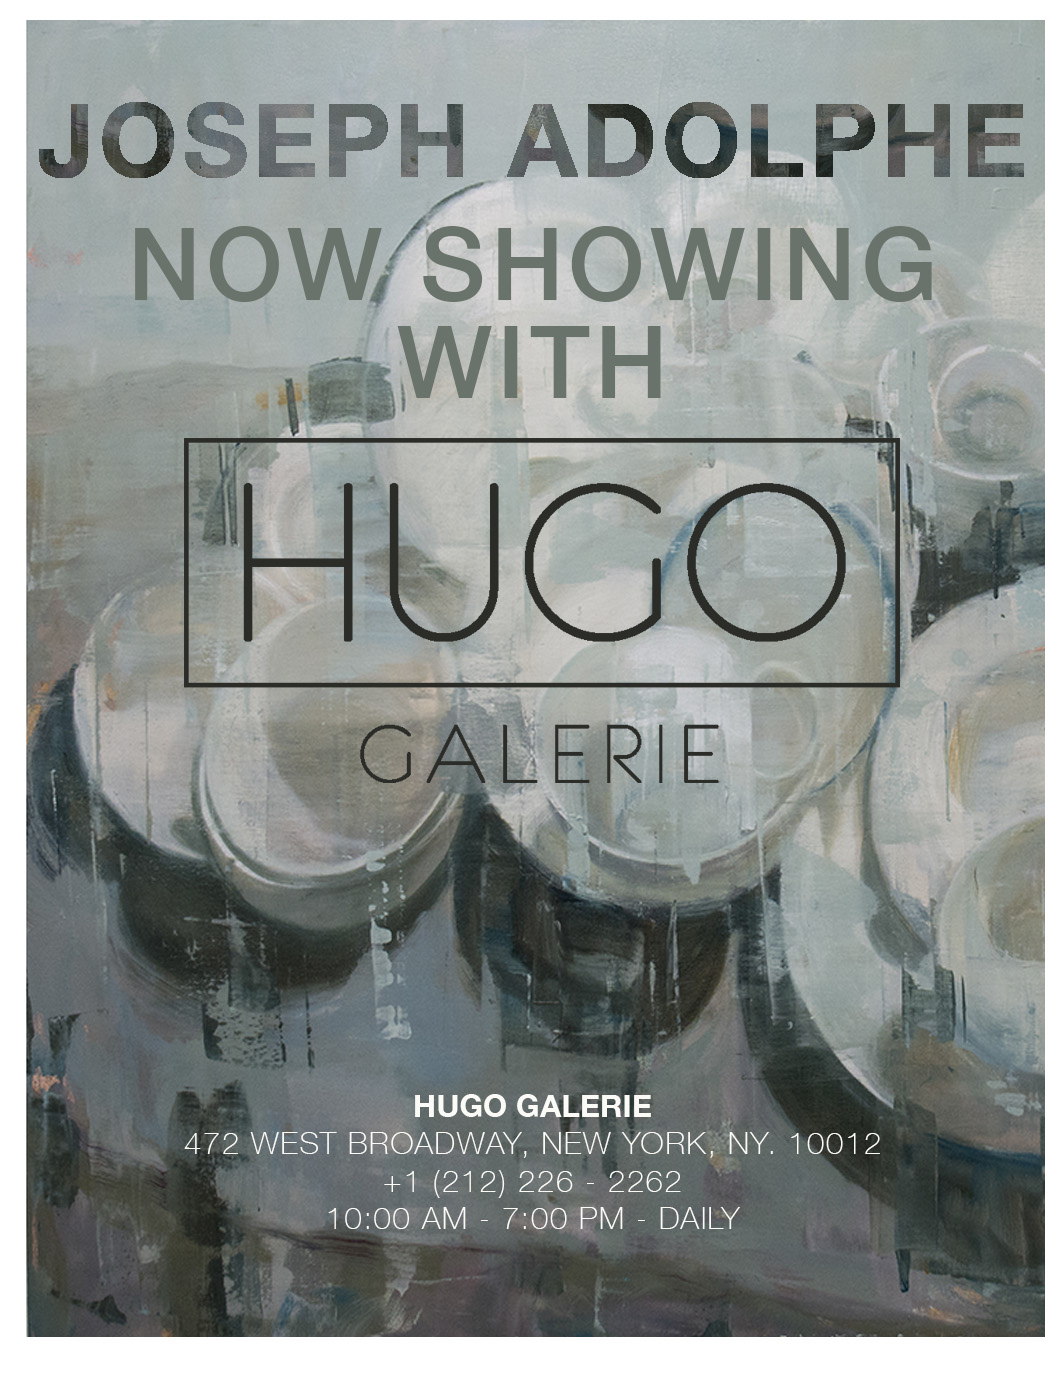 Very Happy to Announce new gallery representation with Hugo Galerie in NYC. Solo exhibition coming in 2020